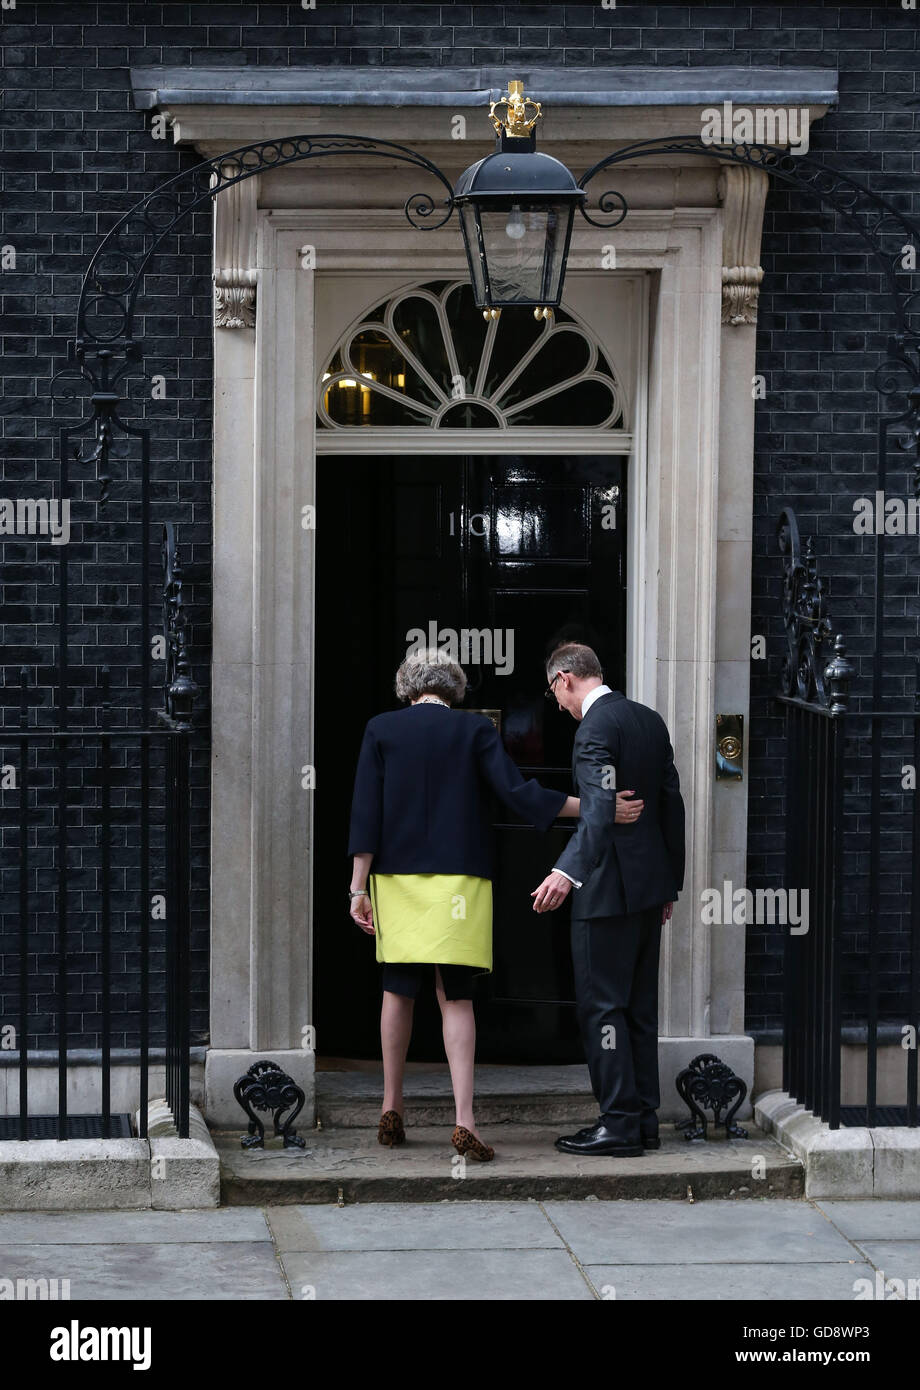 London, UK. 13th July, 2016. Britain's new Prime Minister Theresa May(L) and her husband walk towards 10 Downing - Stock Image